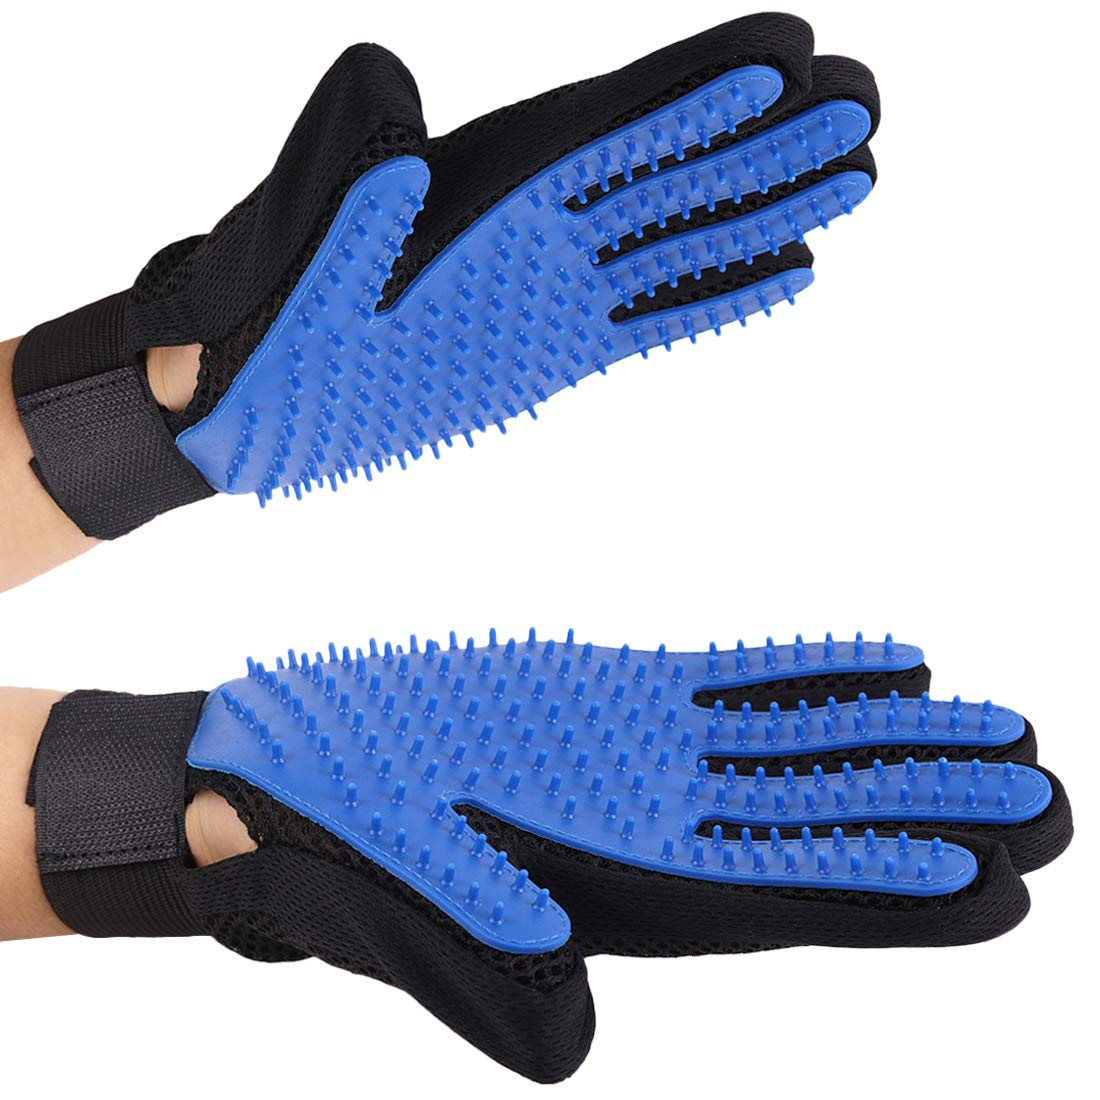 Pet Grooming Glove, POPULUS Gentle Deshedding Brush Glove with Lanyard and Pet Waste Bag, Comb Bath Massage Hair Remover Tool for Dogs Cats Rabbits Horses with Long and Short Hair, One Pair